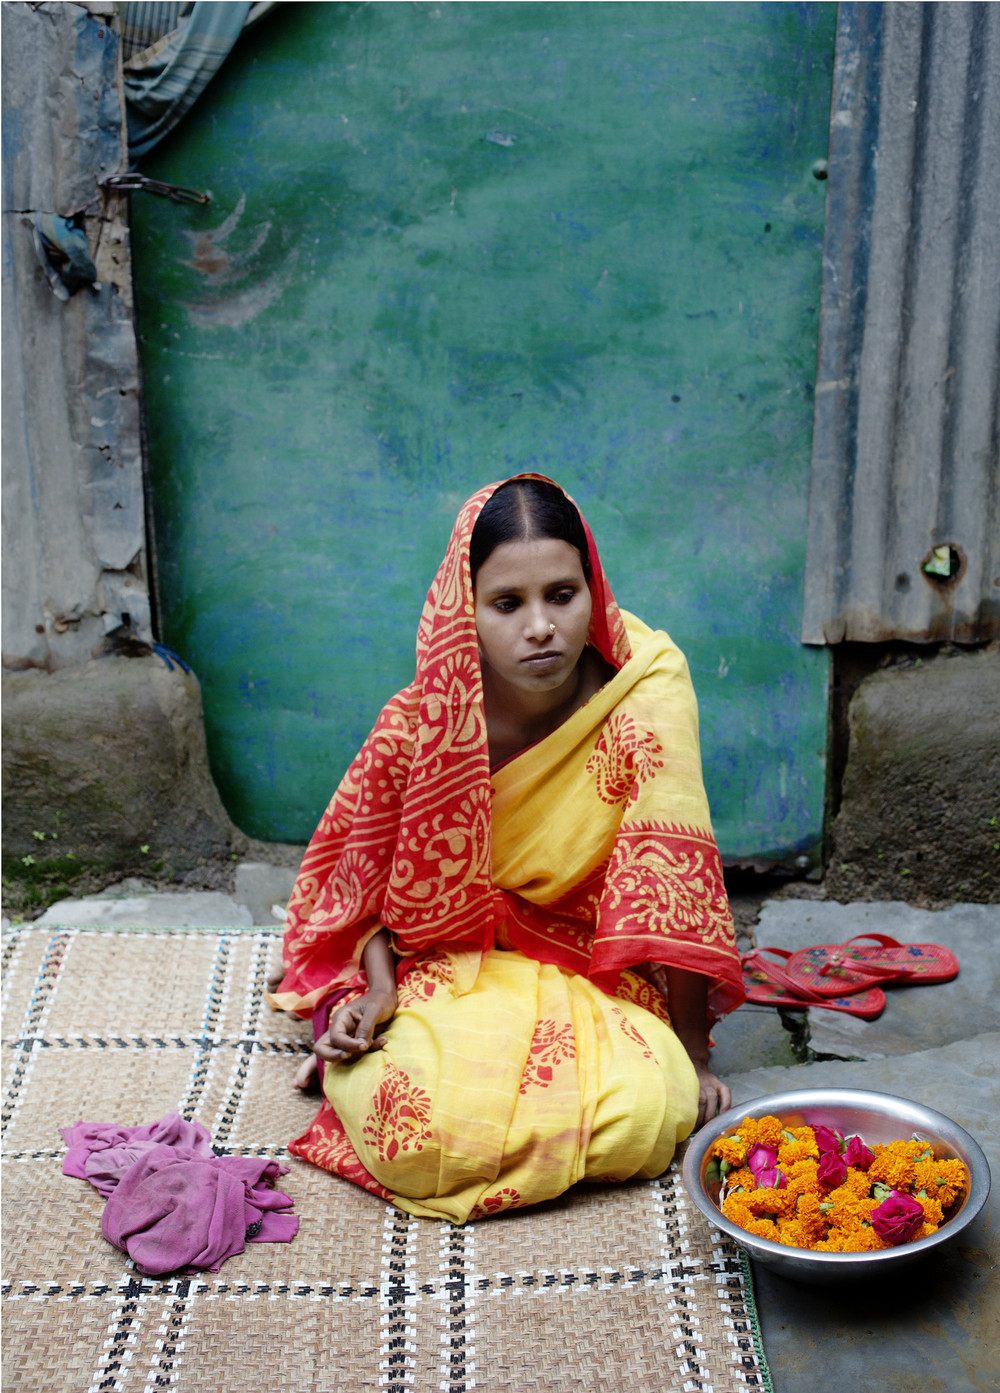 Bangladeshi child bride Sharina (Credit: Plan International)